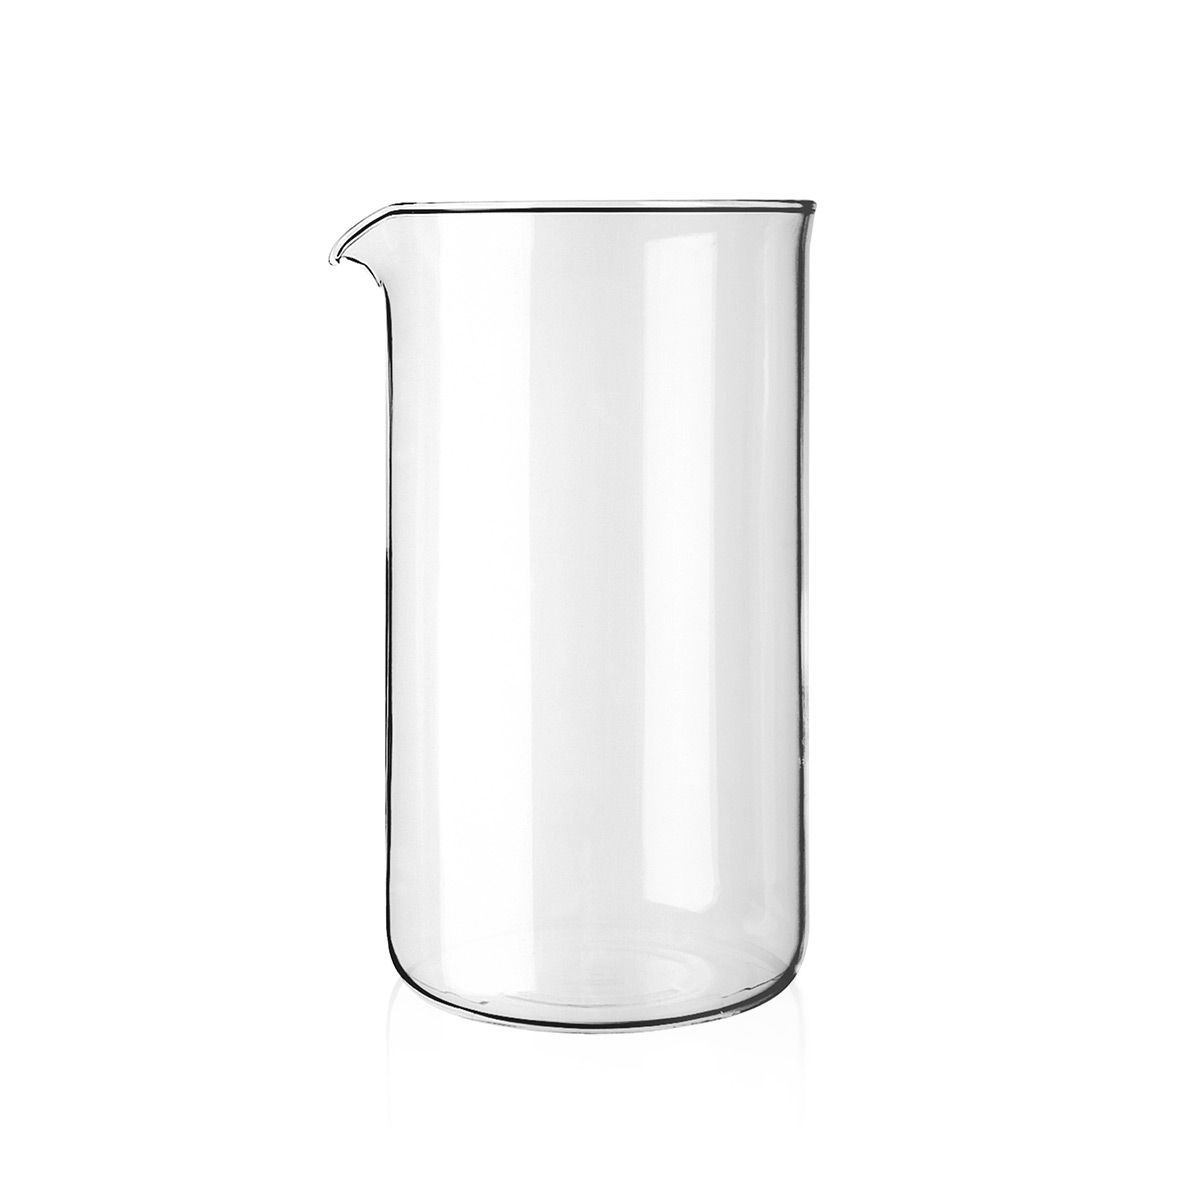 Bodum Glass Replacement for Coffee Maker